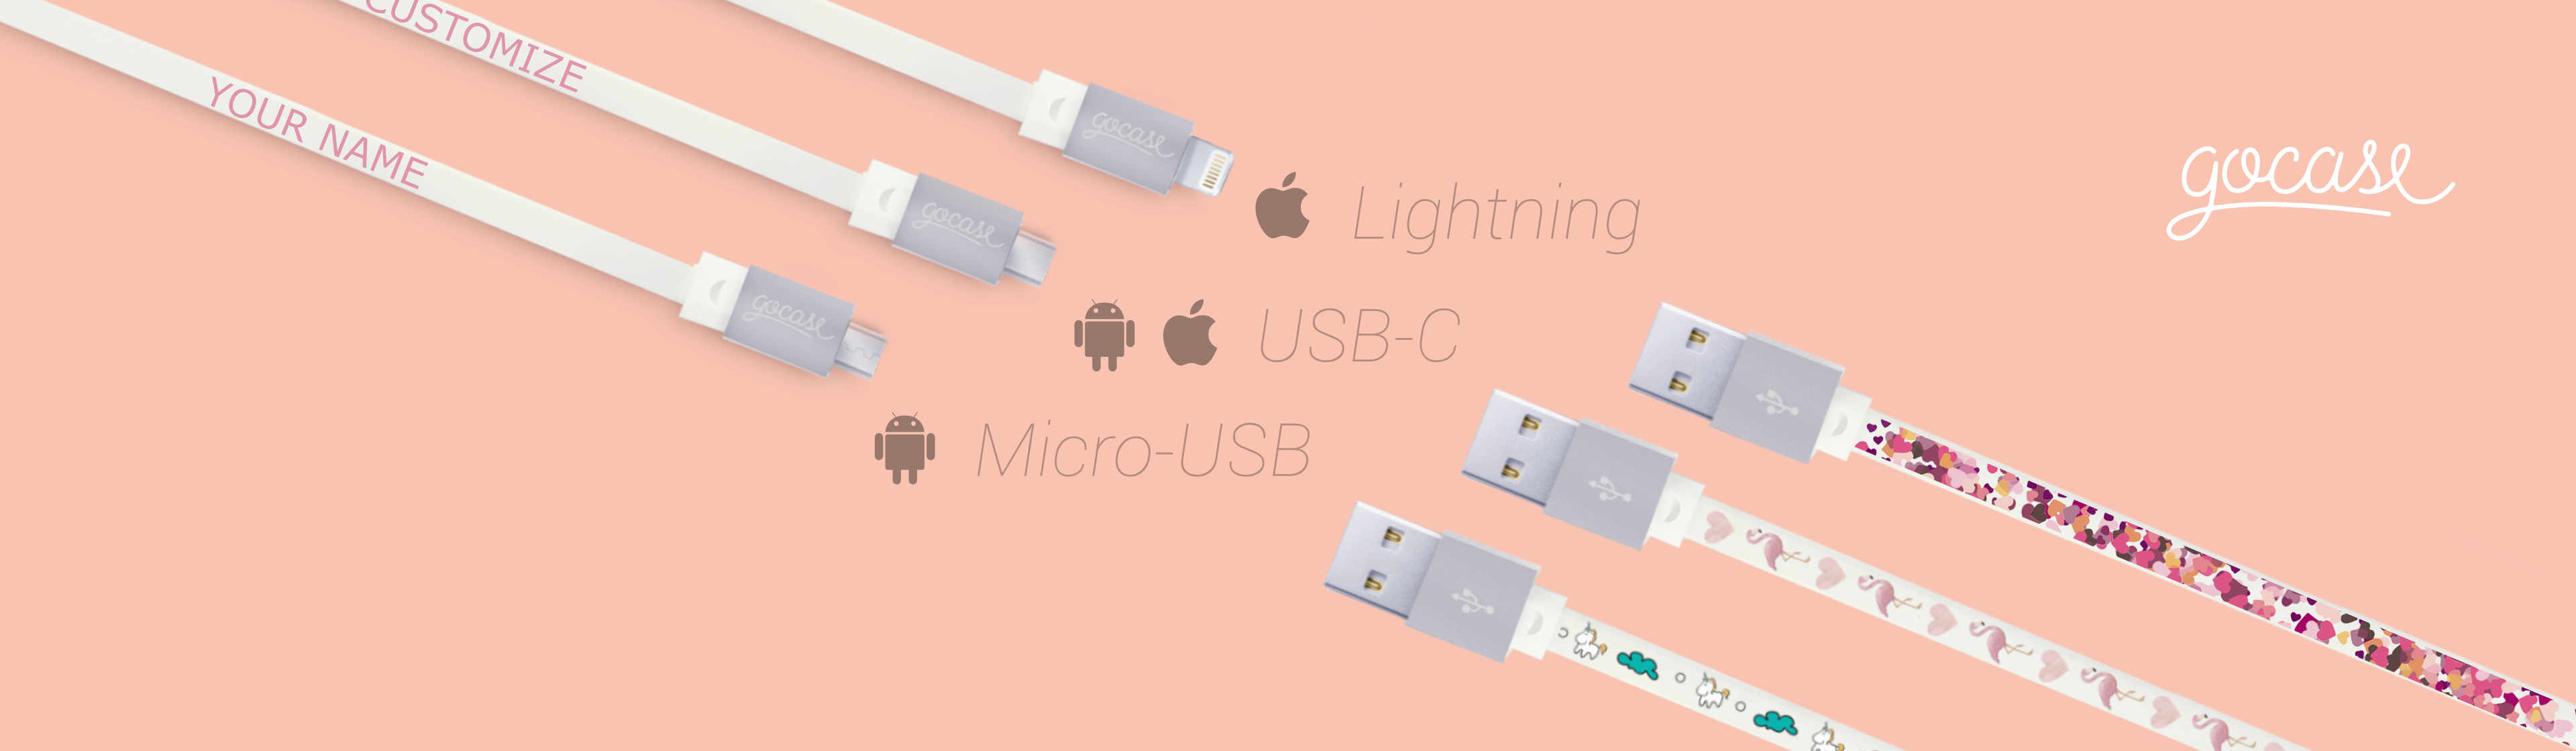 Lightining, USB-C, Micro-USB